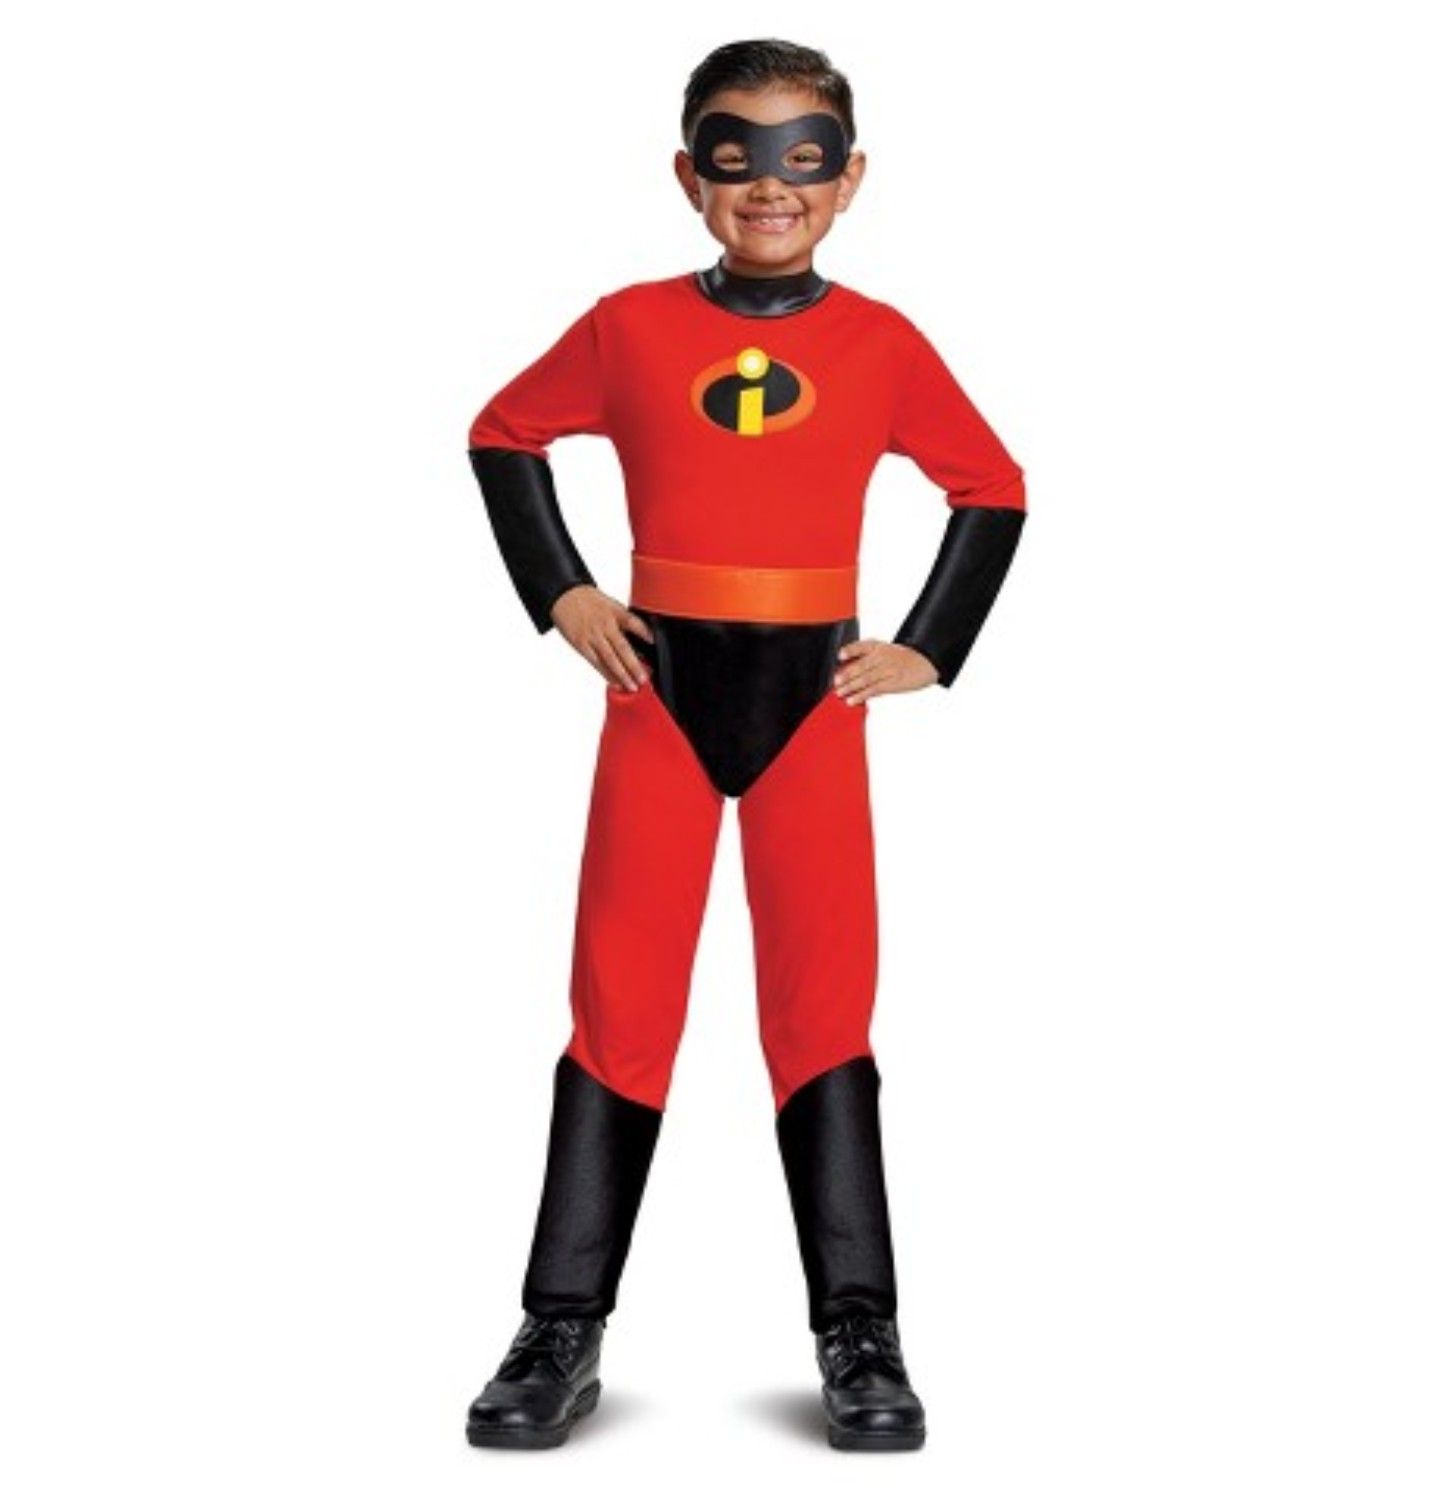 NEW Children's Halloween Costume Mr. Incredible jumpsuit Costume boys Dash Cosplay Kids Superhero Costume